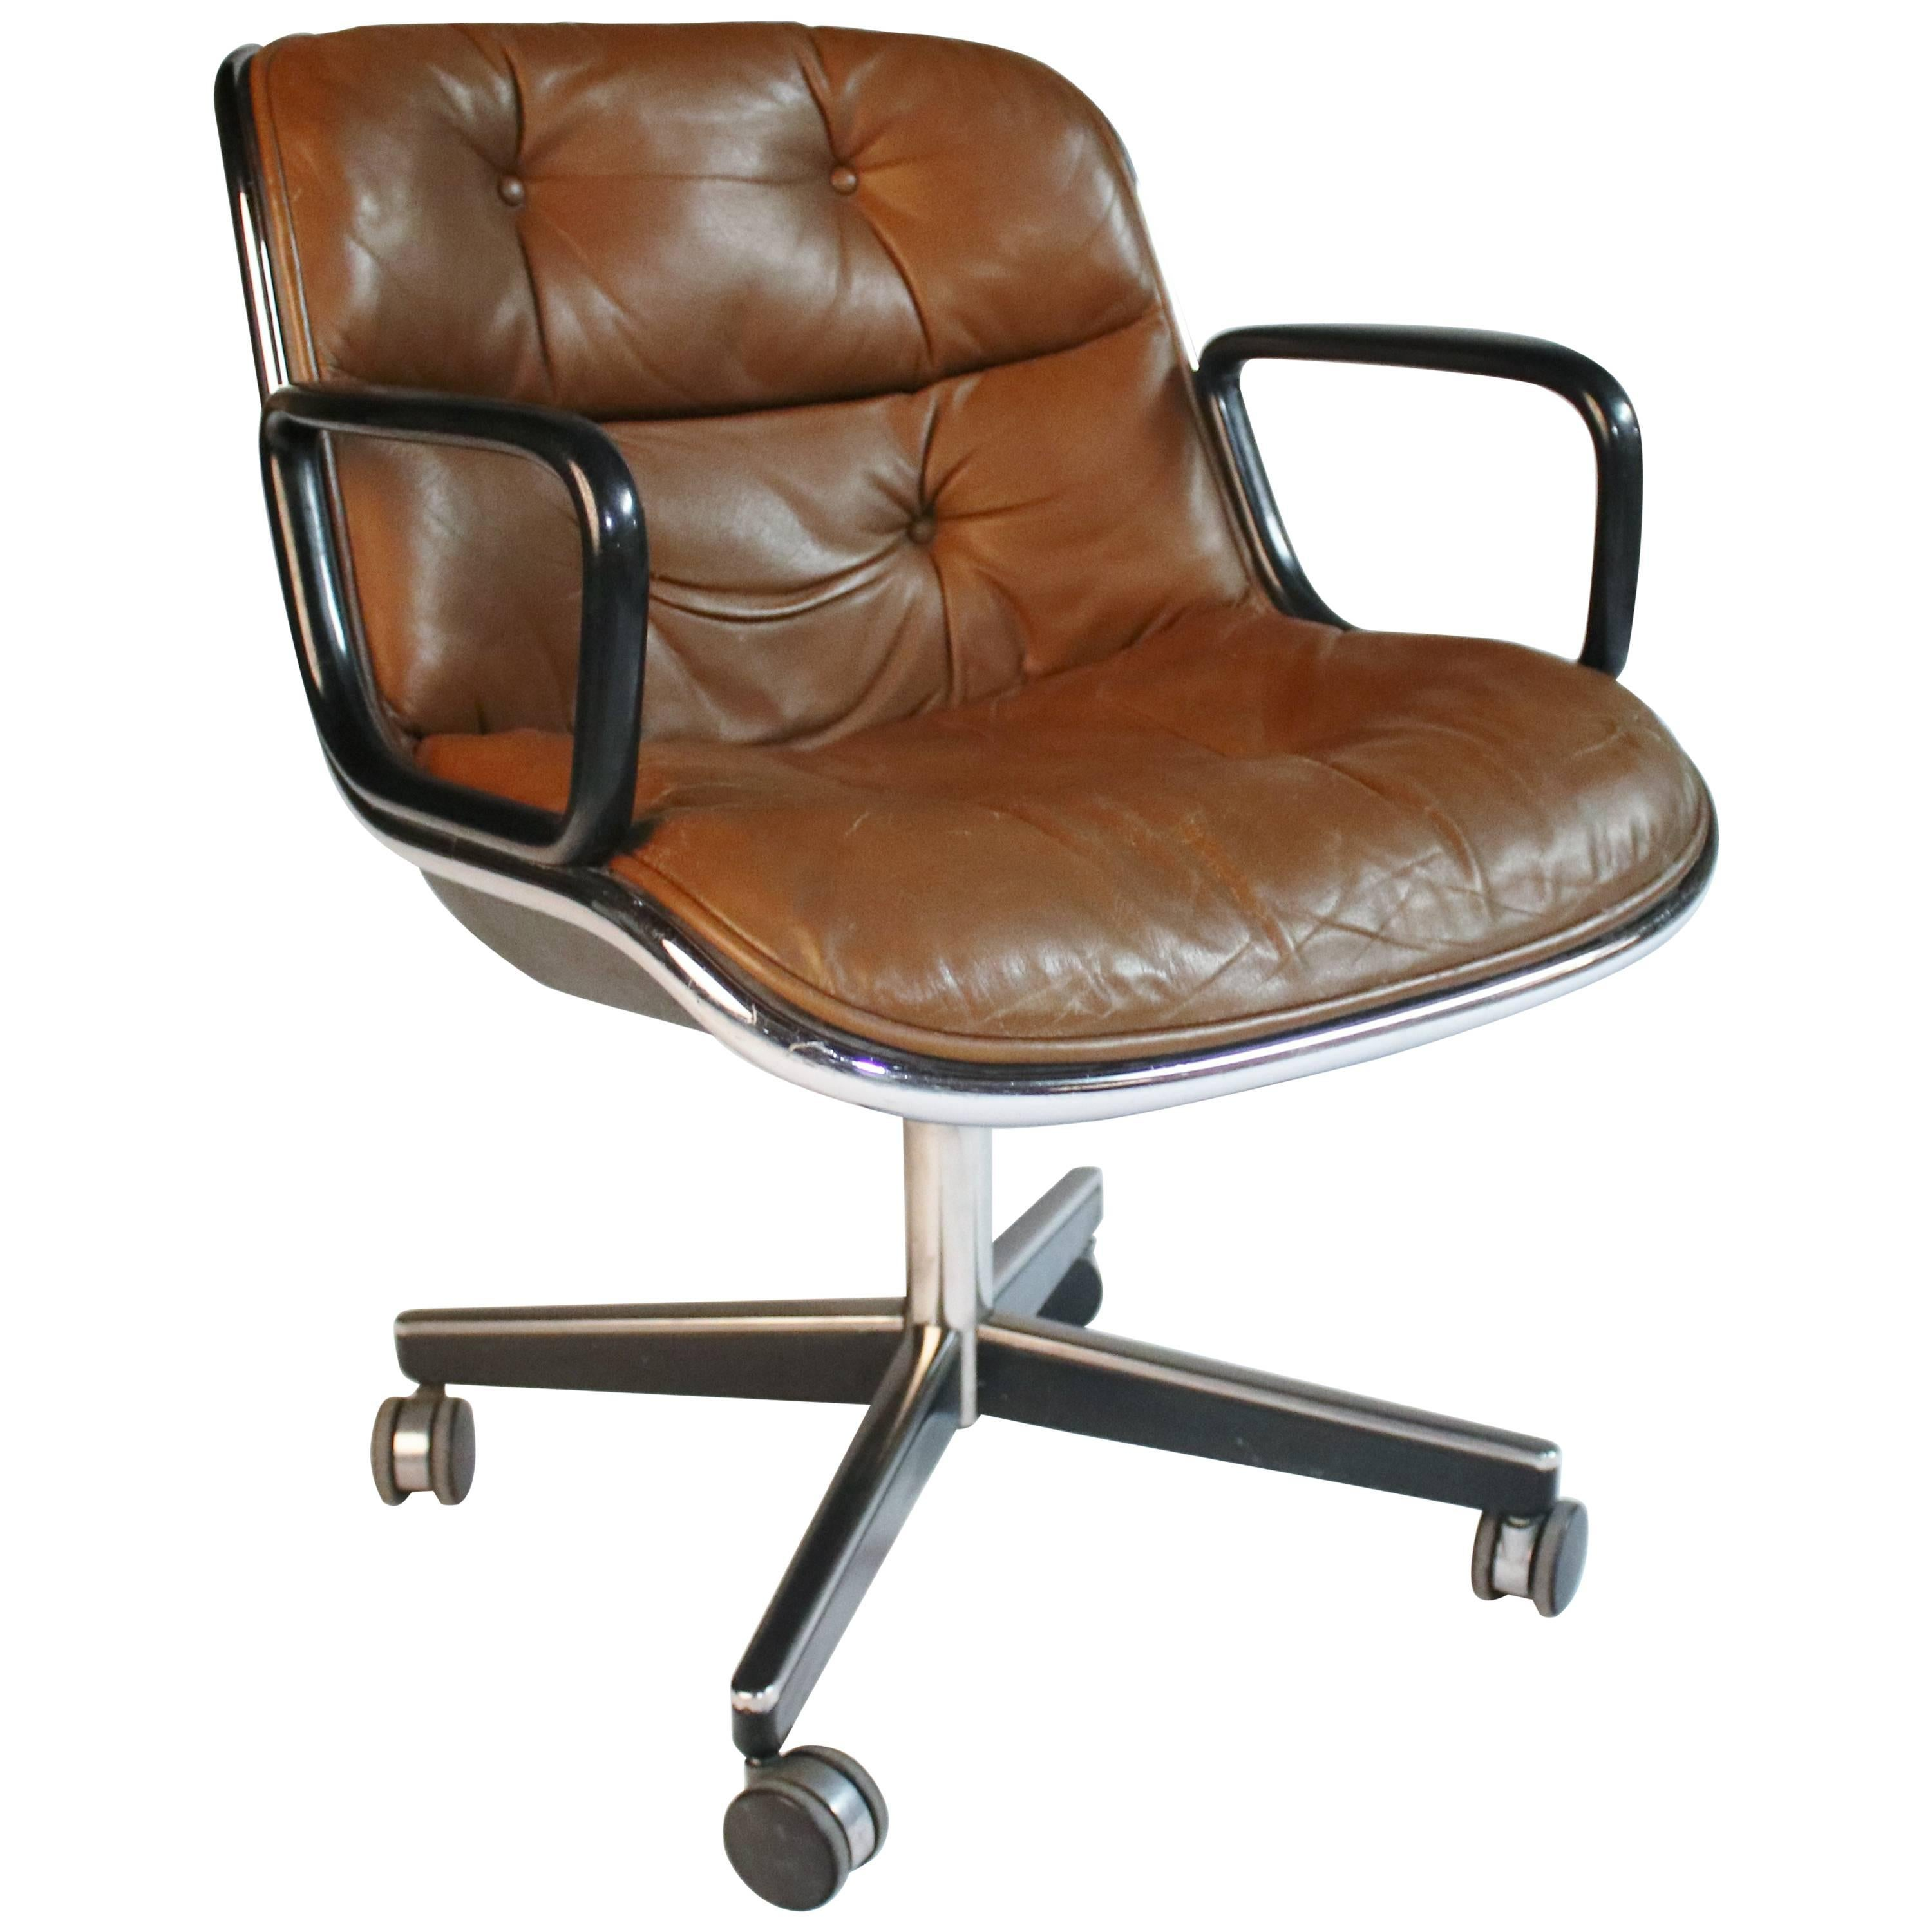 1970s Charles Pollack For Knoll Executive Desk Chair 1